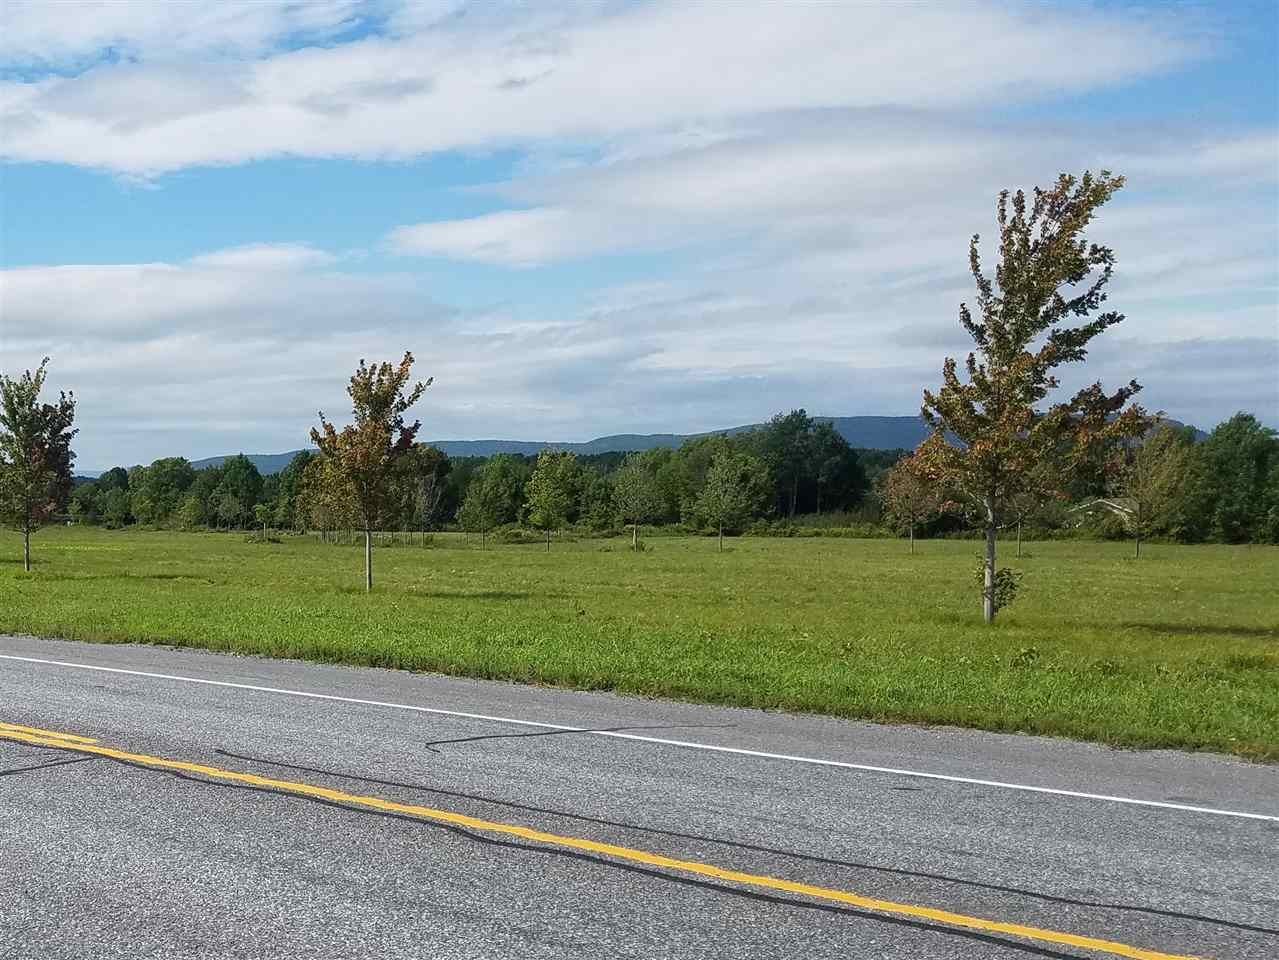 Ready to build commercial lots with great exposure on Route 7! Lot #1 has 2.0 acres of area and has approximately 250 feet of road frontage on Campground Road. Close to entrance to the subdivision and is visible from Route 7 traffic. Gently sloping lot is ready for your business. Electric and septic have been piped to the lots and will be ready for hook-up. 3 Phase Power Available! Don't miss the opportunity to locate your business in this 5 unit subdivision in the heart of Addison County.